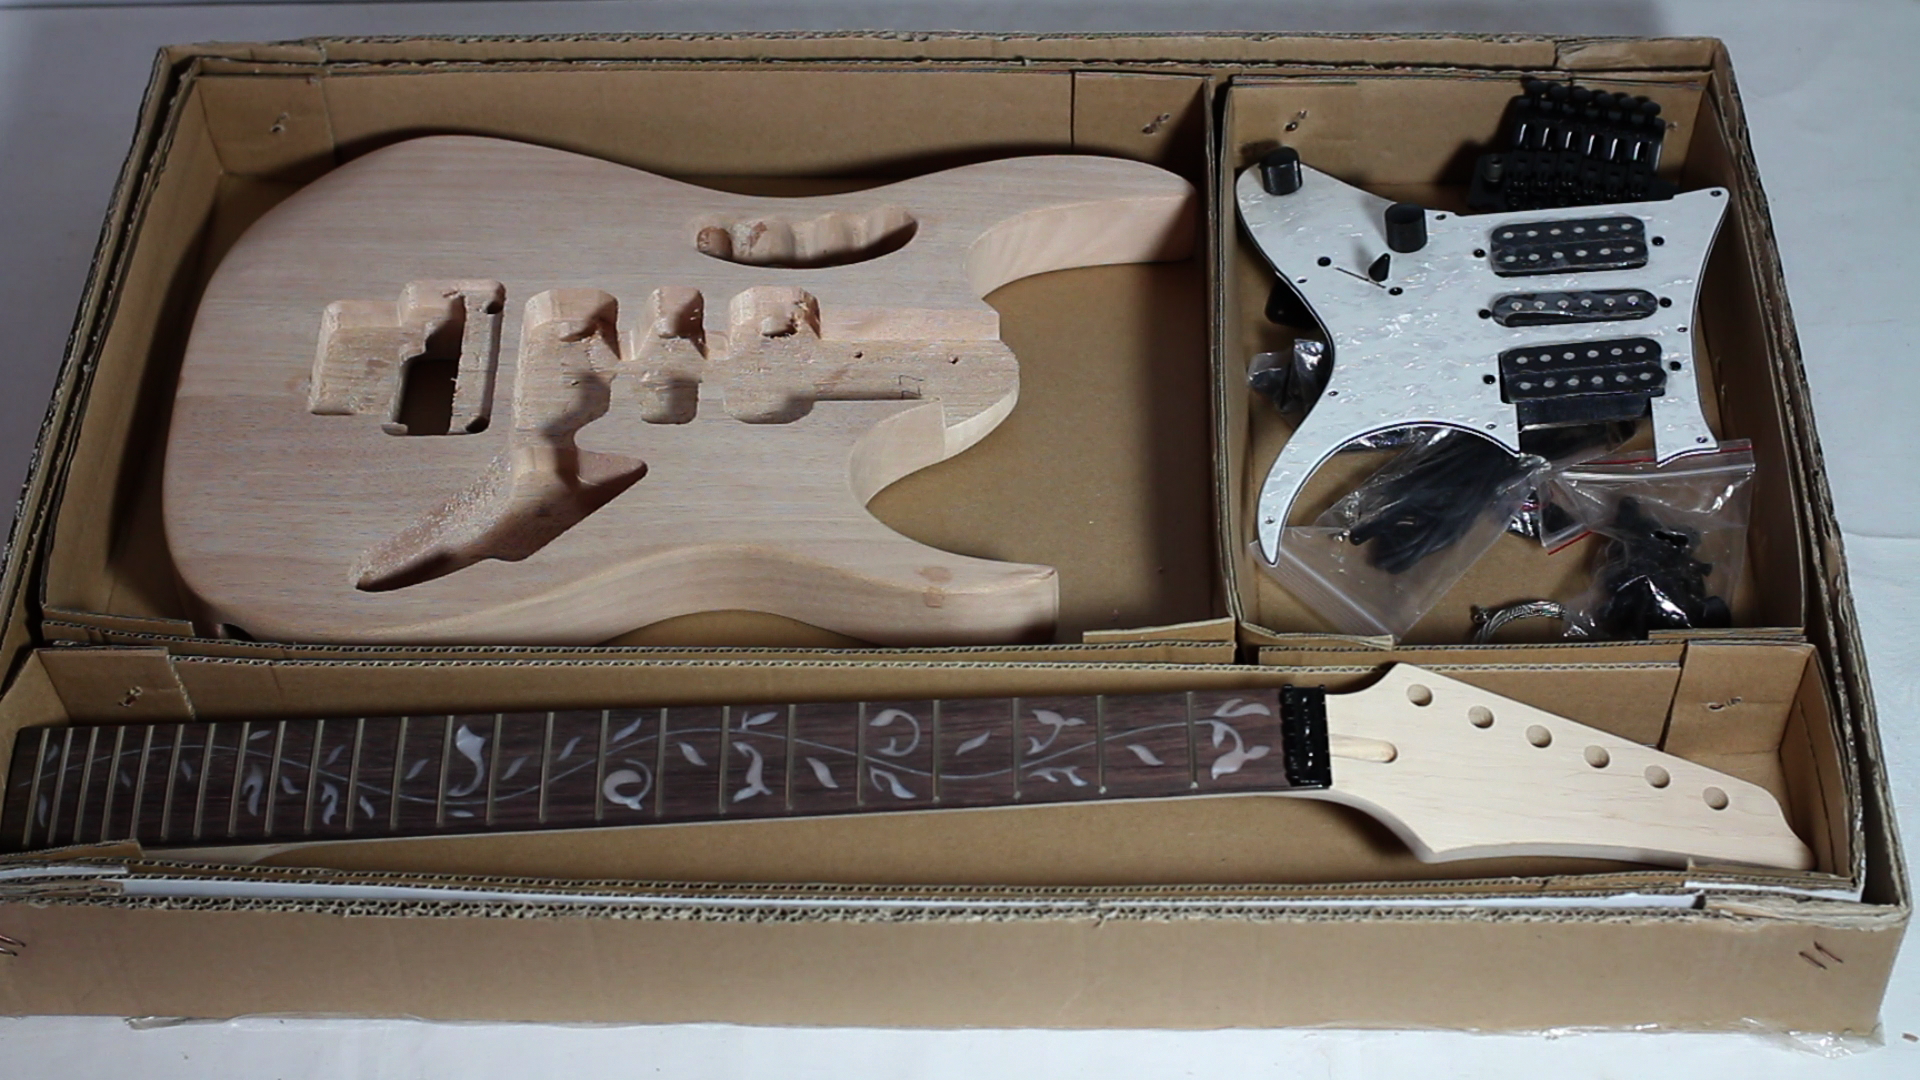 Fredyen a collection of unfinished projects diy jem style guitar kit part 1 overview solutioingenieria Gallery